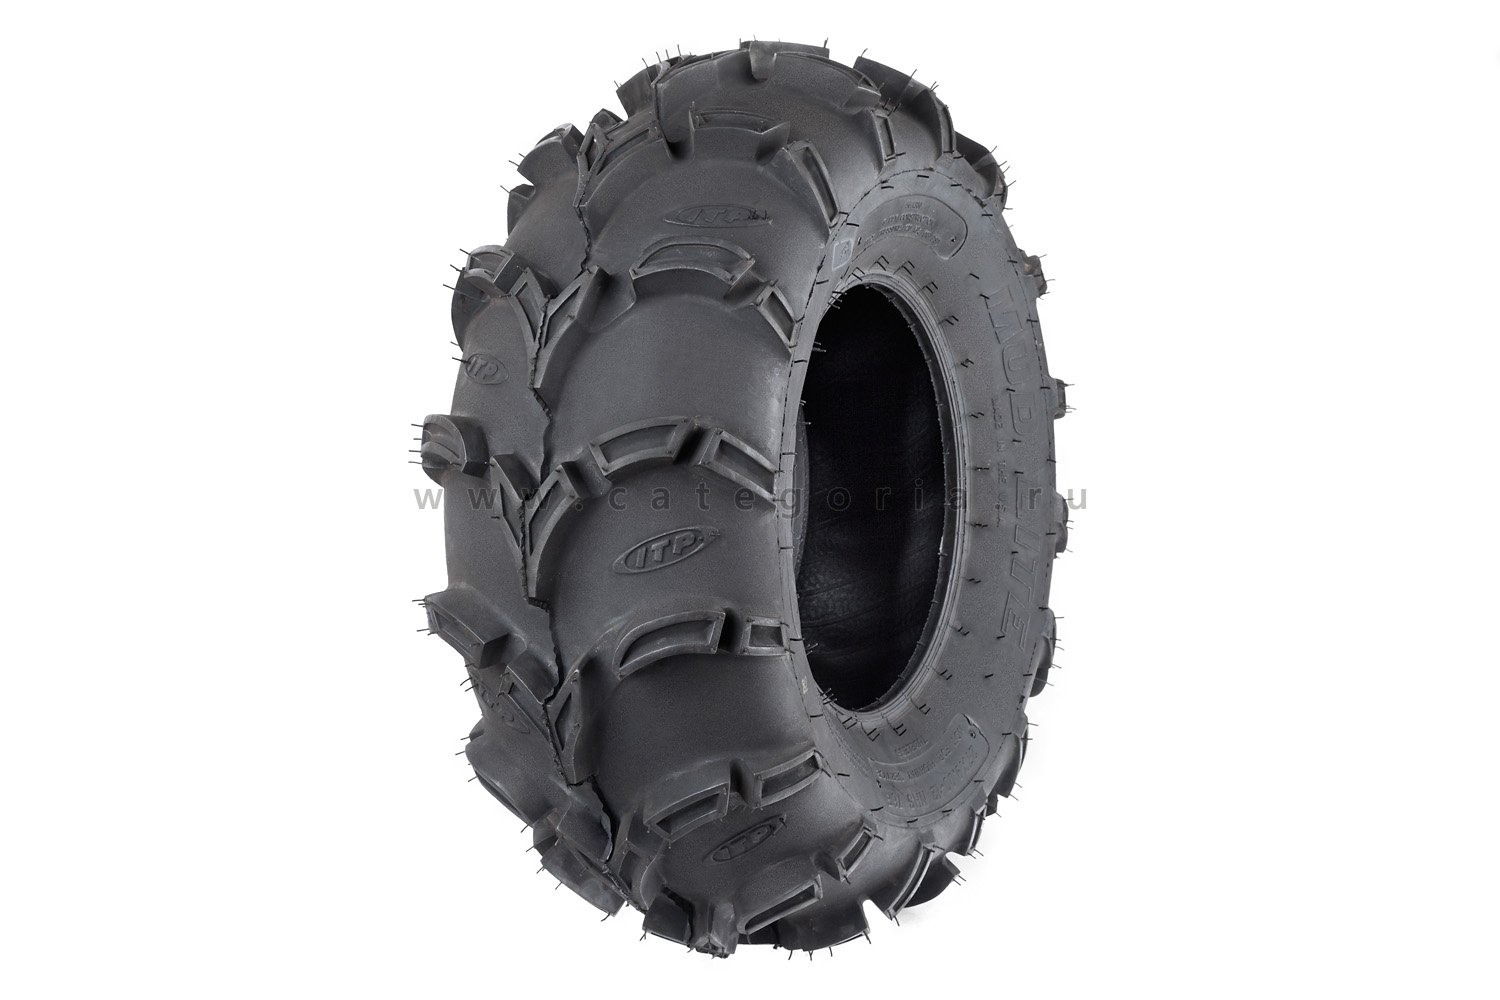 ITP Mud Lite XL 27x10 R12 - шина для квадроцикла